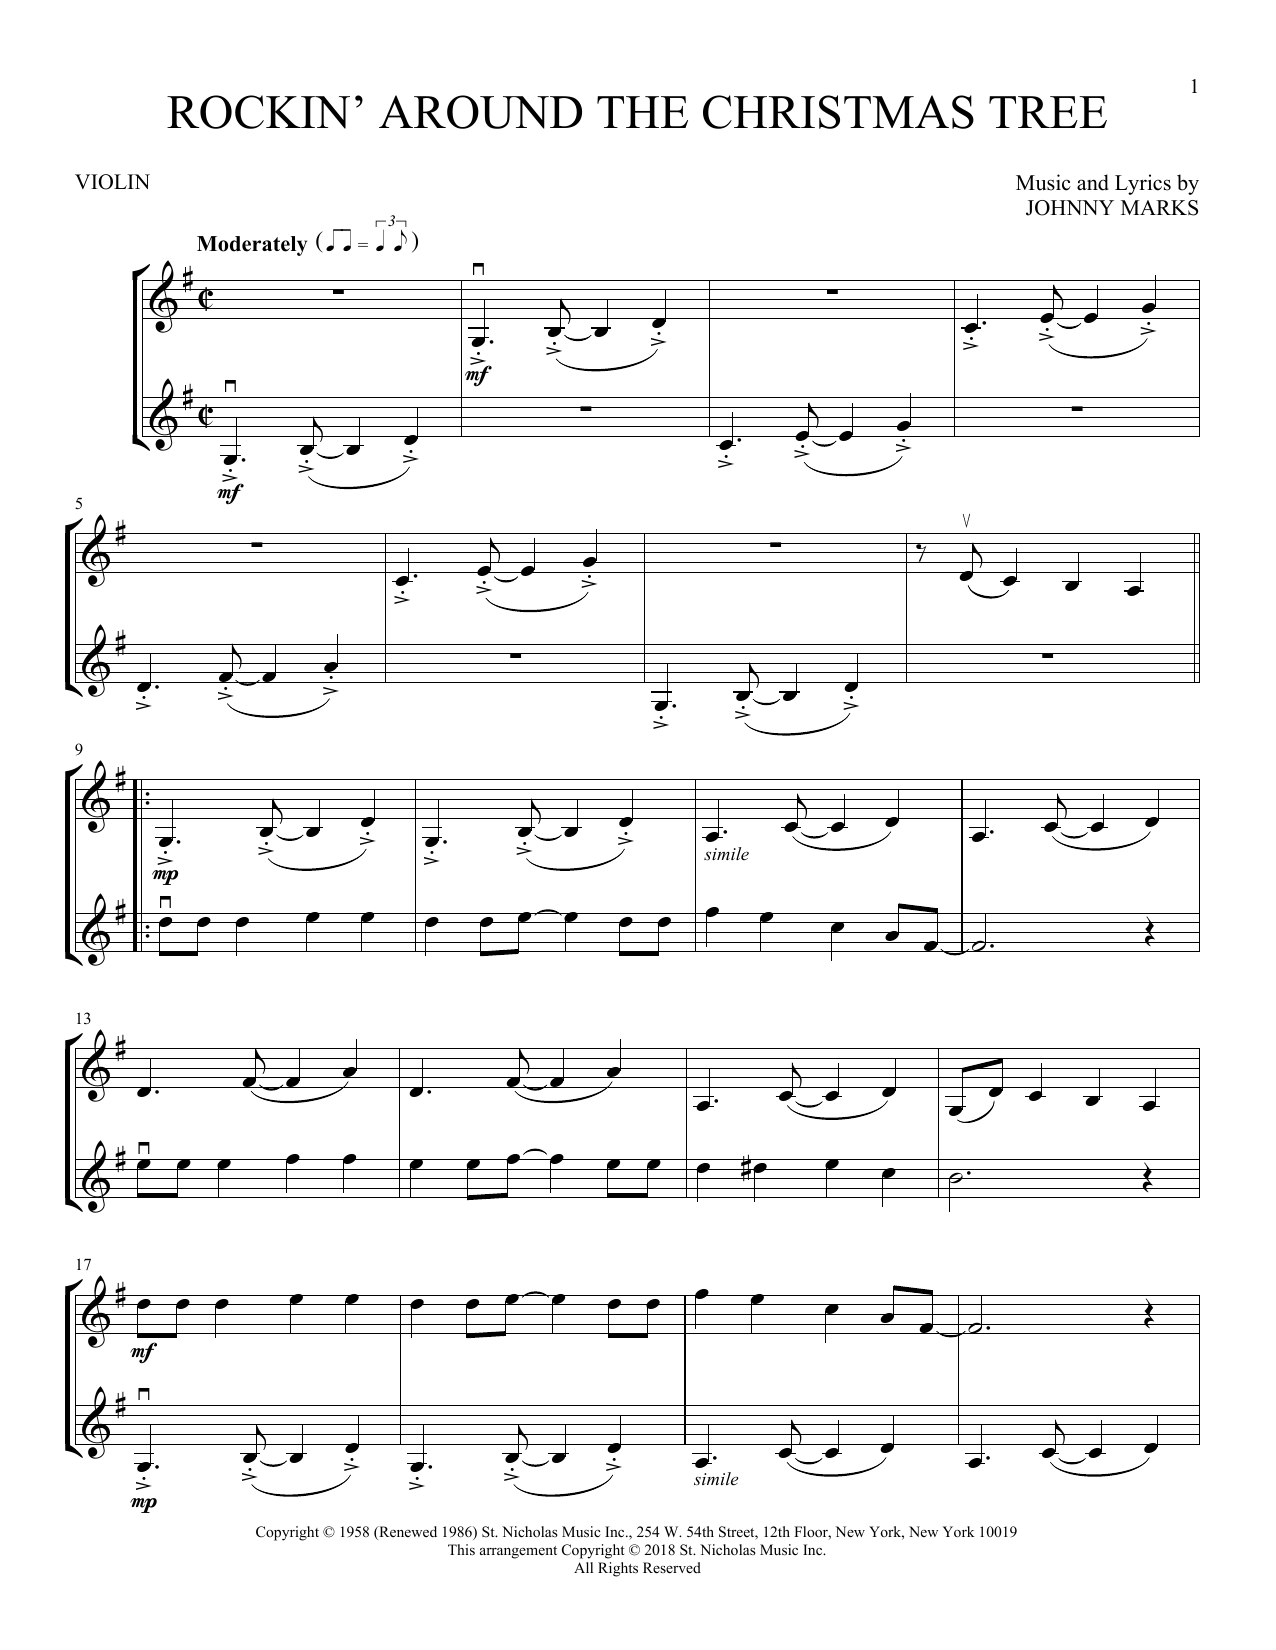 Rockin' Around The Christmas Tree Sheet Music | Johnny ...